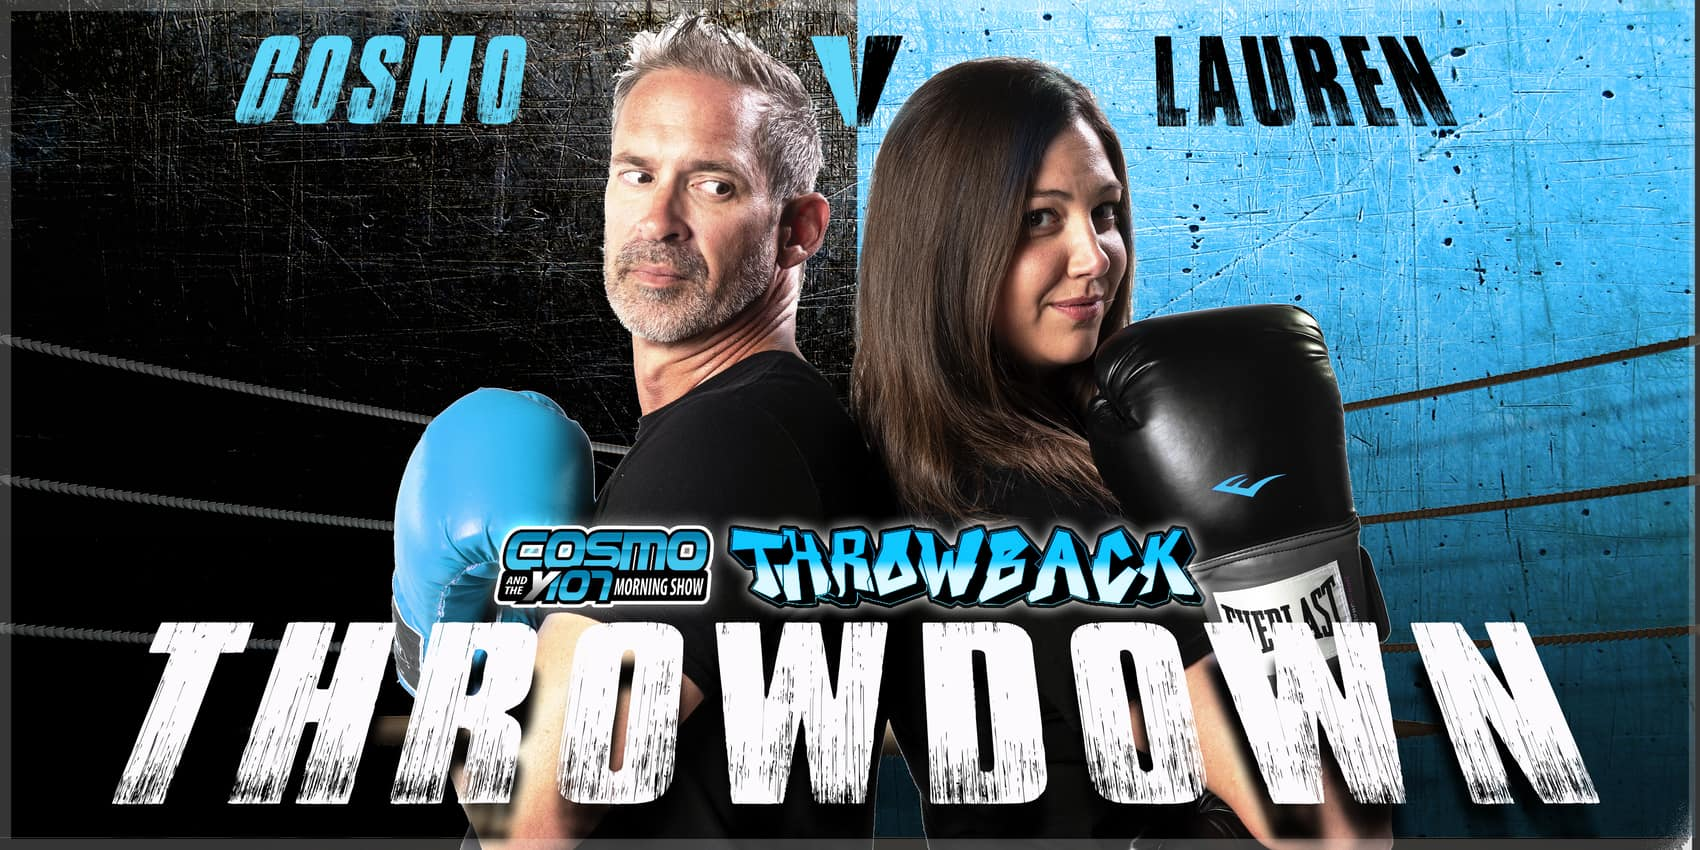 Throwback throwdown cover photo of Cosmo and Lauren back to back in a boxing ring